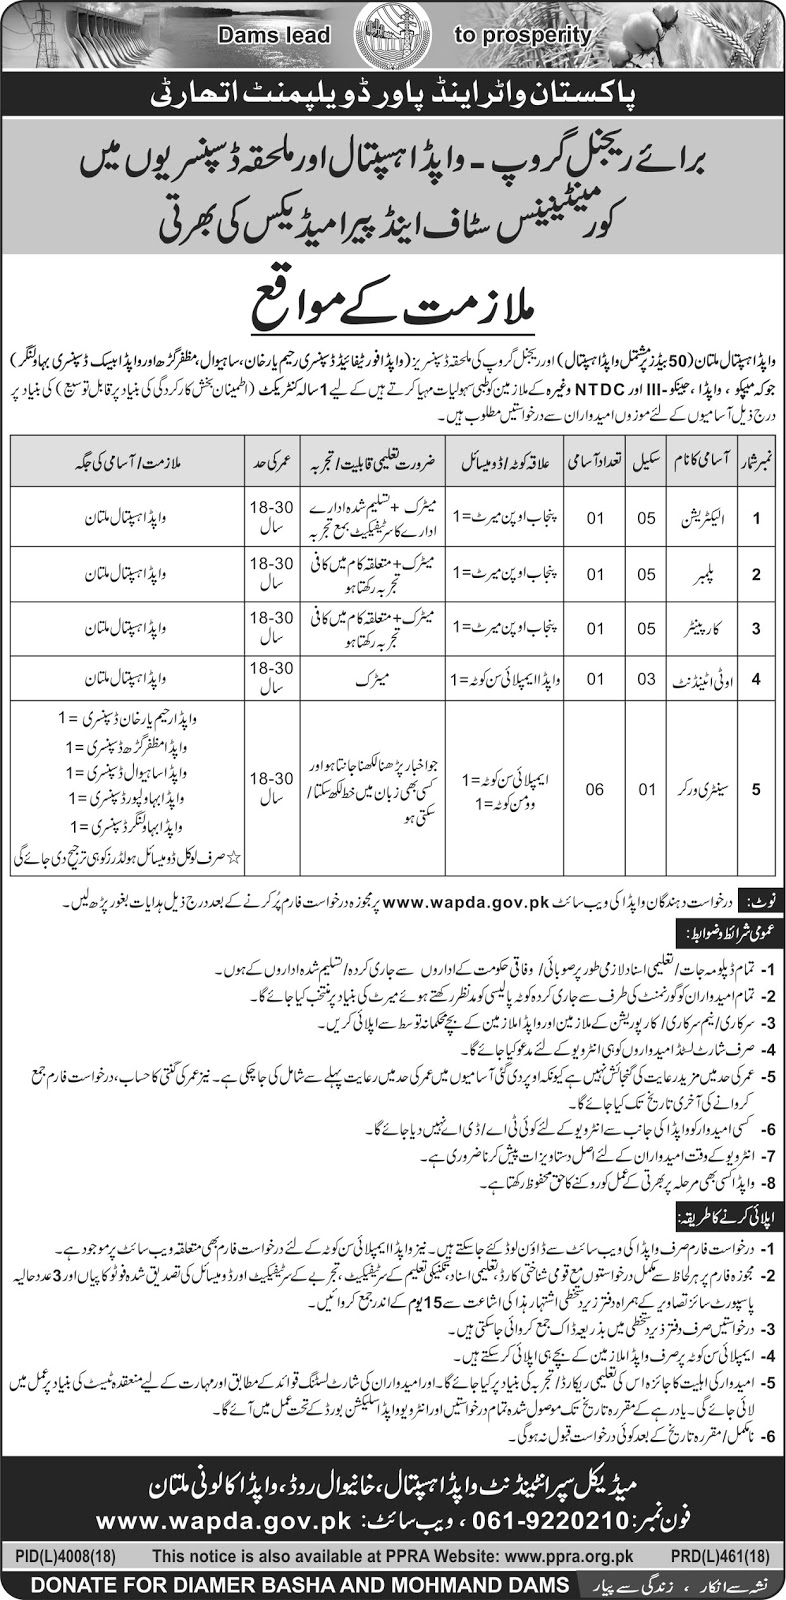 JOBS OPPORTUNITY AT WAPDA HOSPITAL MULTAN